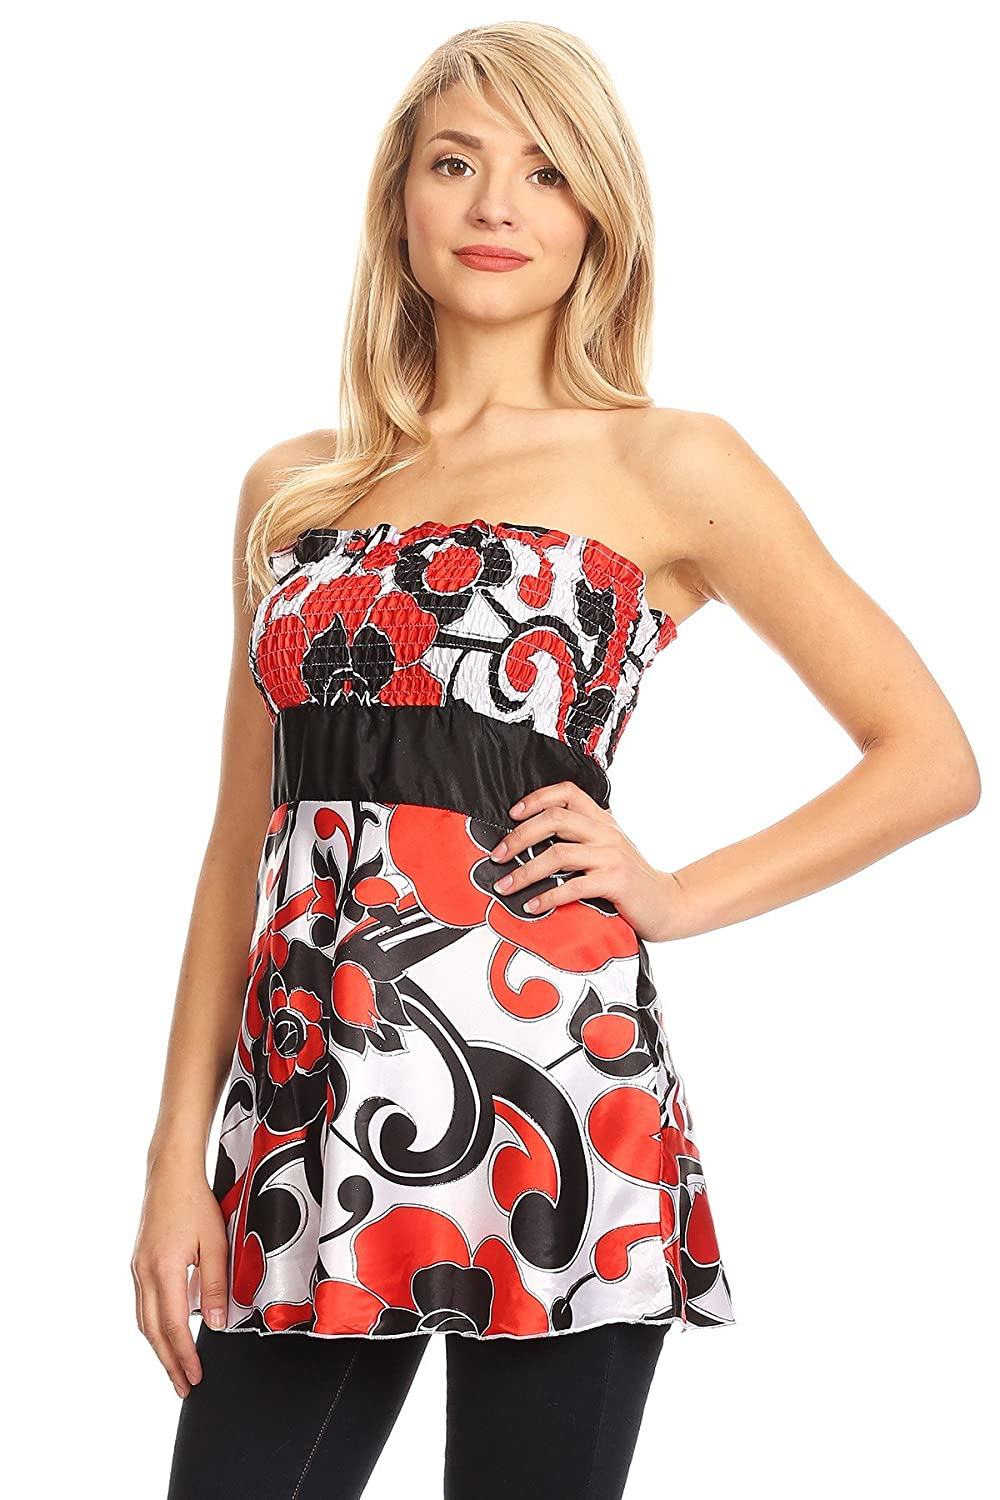 Shes Cool Strapless Geometric Print Long Body Top